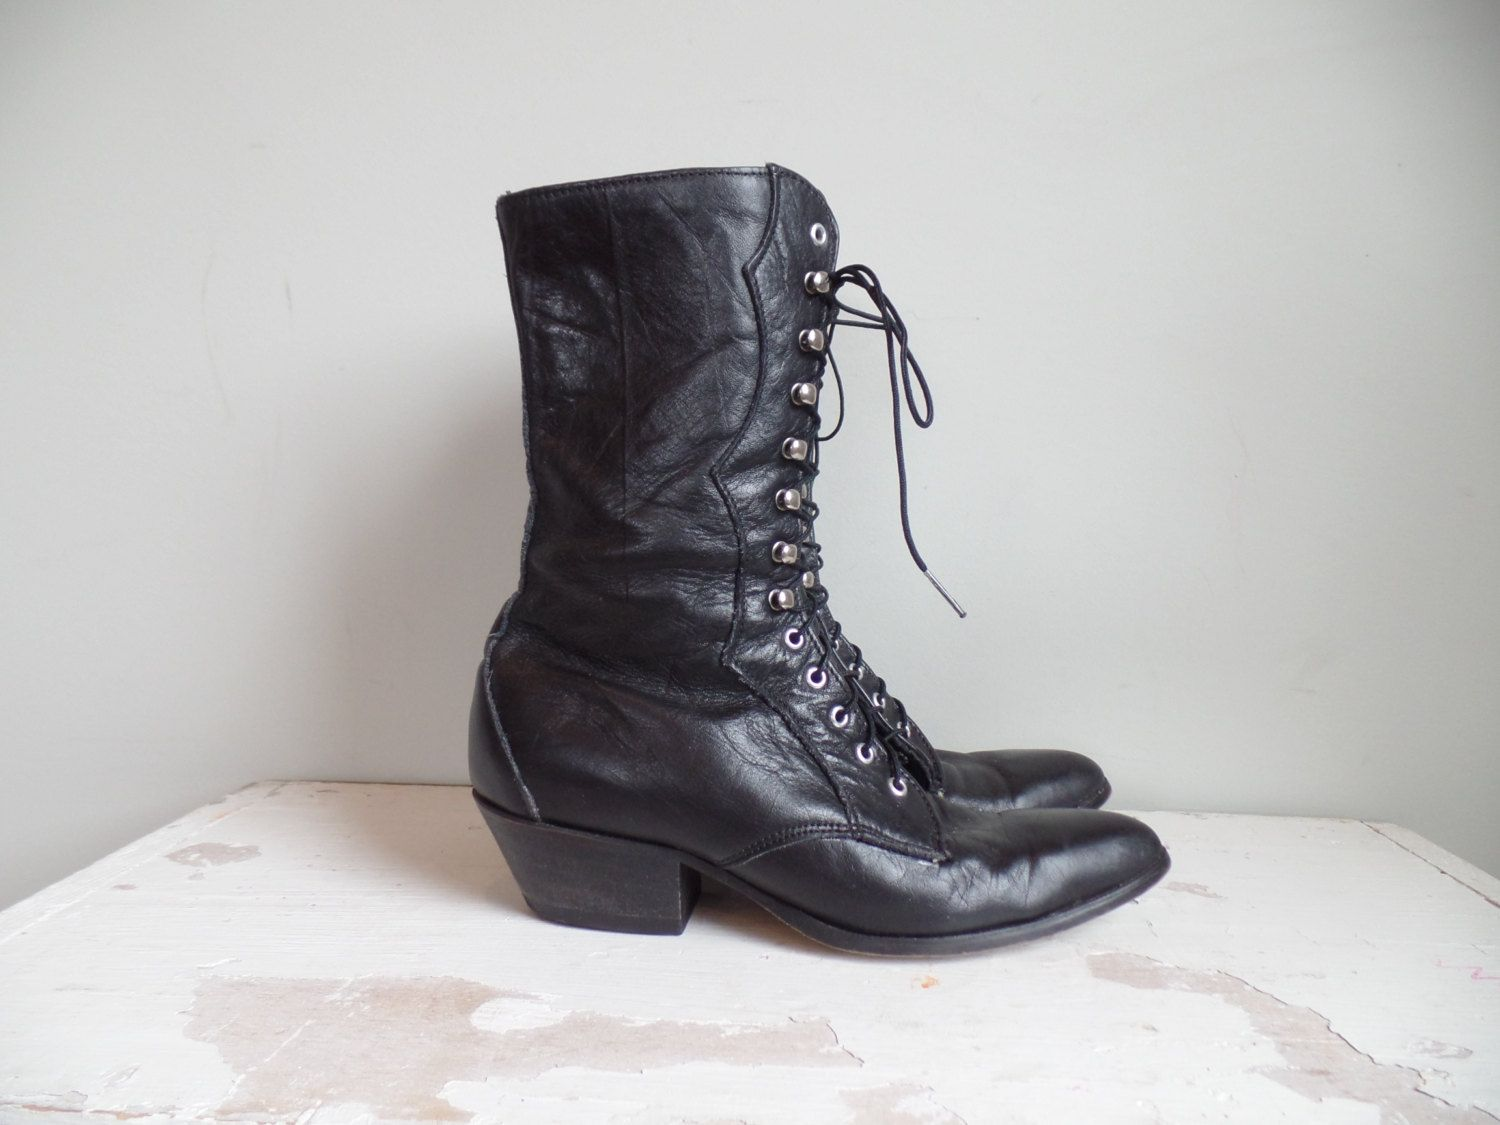 1fd1fe7eb2f Vtg Laredo Lace Up Boots    Black Leather Roper Boots    Justin    Country  Western Granny Pointy Toe    USA    Womens Size 6.5 M by BerkshireJules on  Etsy